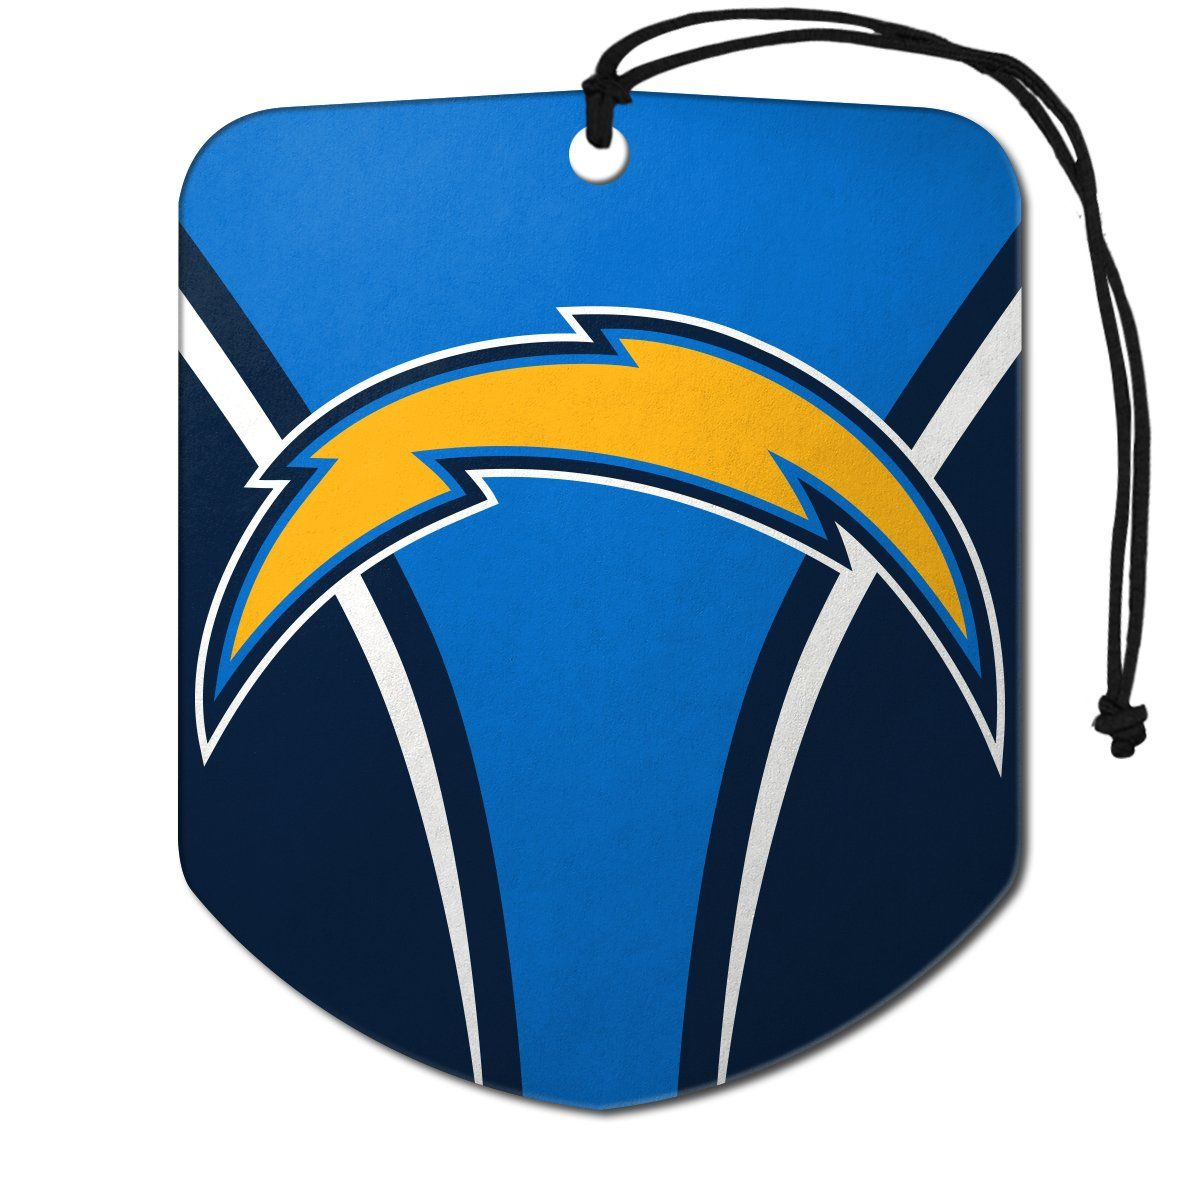 Los Angeles Chargers Air Freshener Shield Design 2 Pack Shield Design Los Angeles Chargers Air Freshener